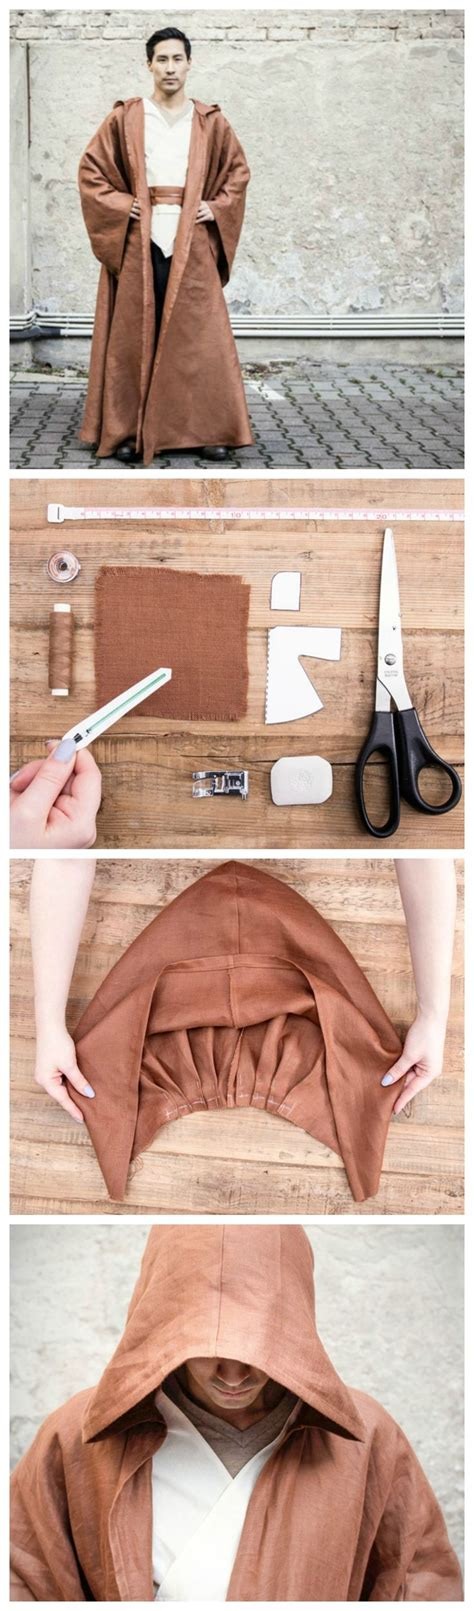 tutorial jedi costume 17 best images about jedi costume ideas on pinterest